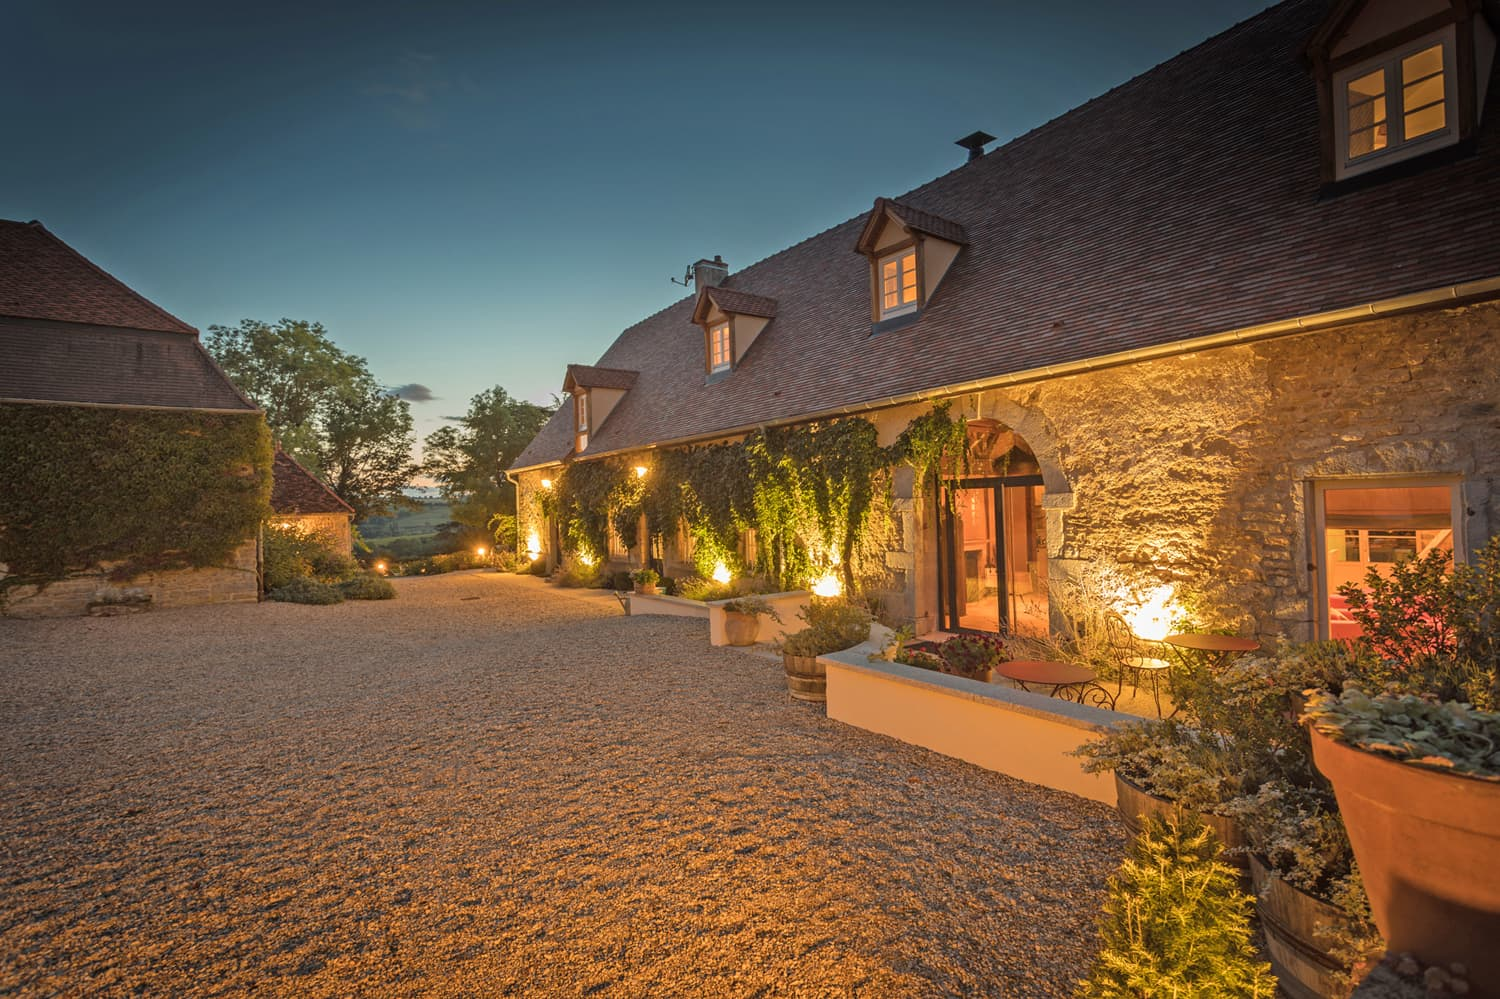 Holiday accommodation in Burgundy